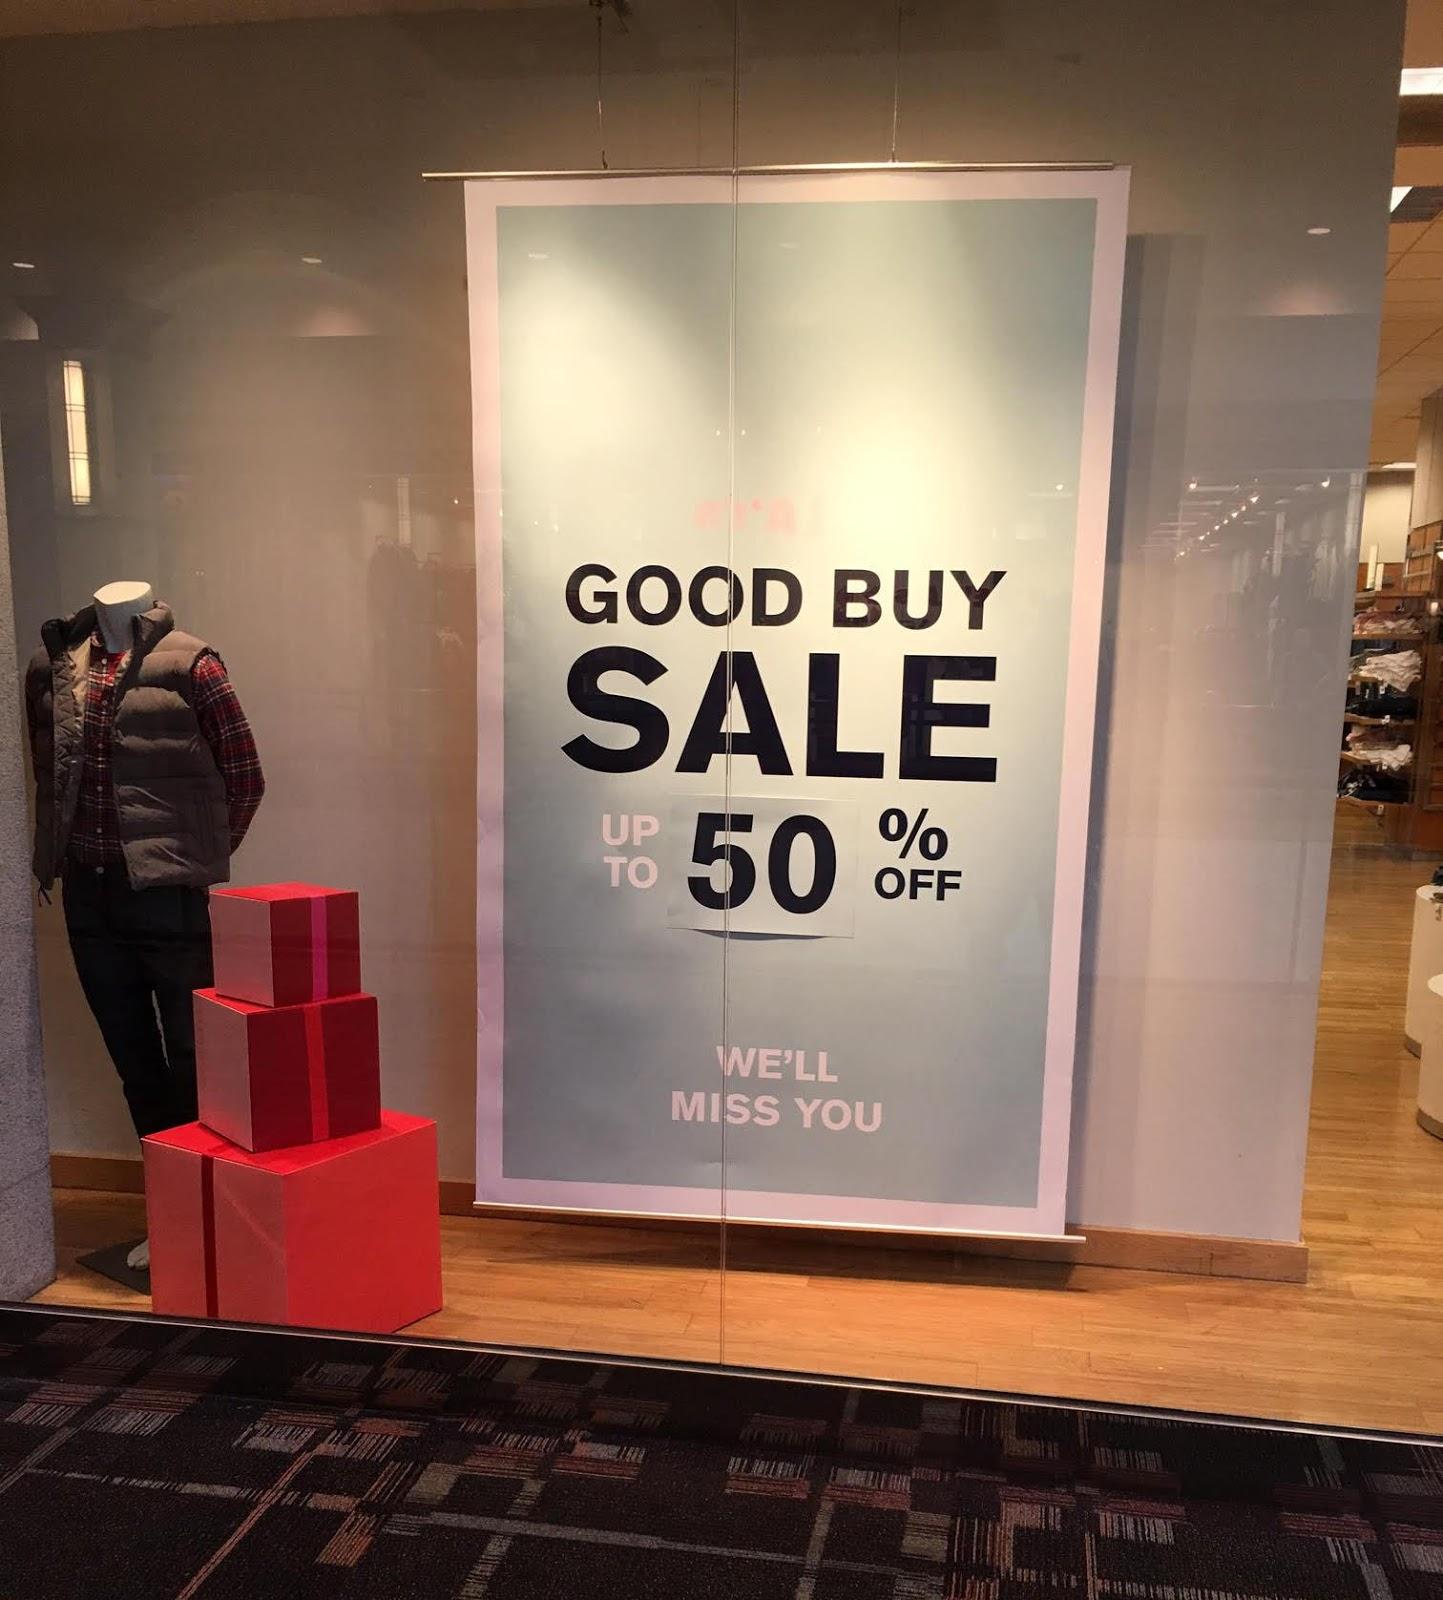 "Gap and Banana Republic – stores Gap Inc. plans to close Gap and Banana Republic locations over the next three years, the company announced in September No list of the stores was released, but they're all ""underperforming."" At the same time, Gap Inc. will open locations for its growing brands, Old Navy and Athleta."